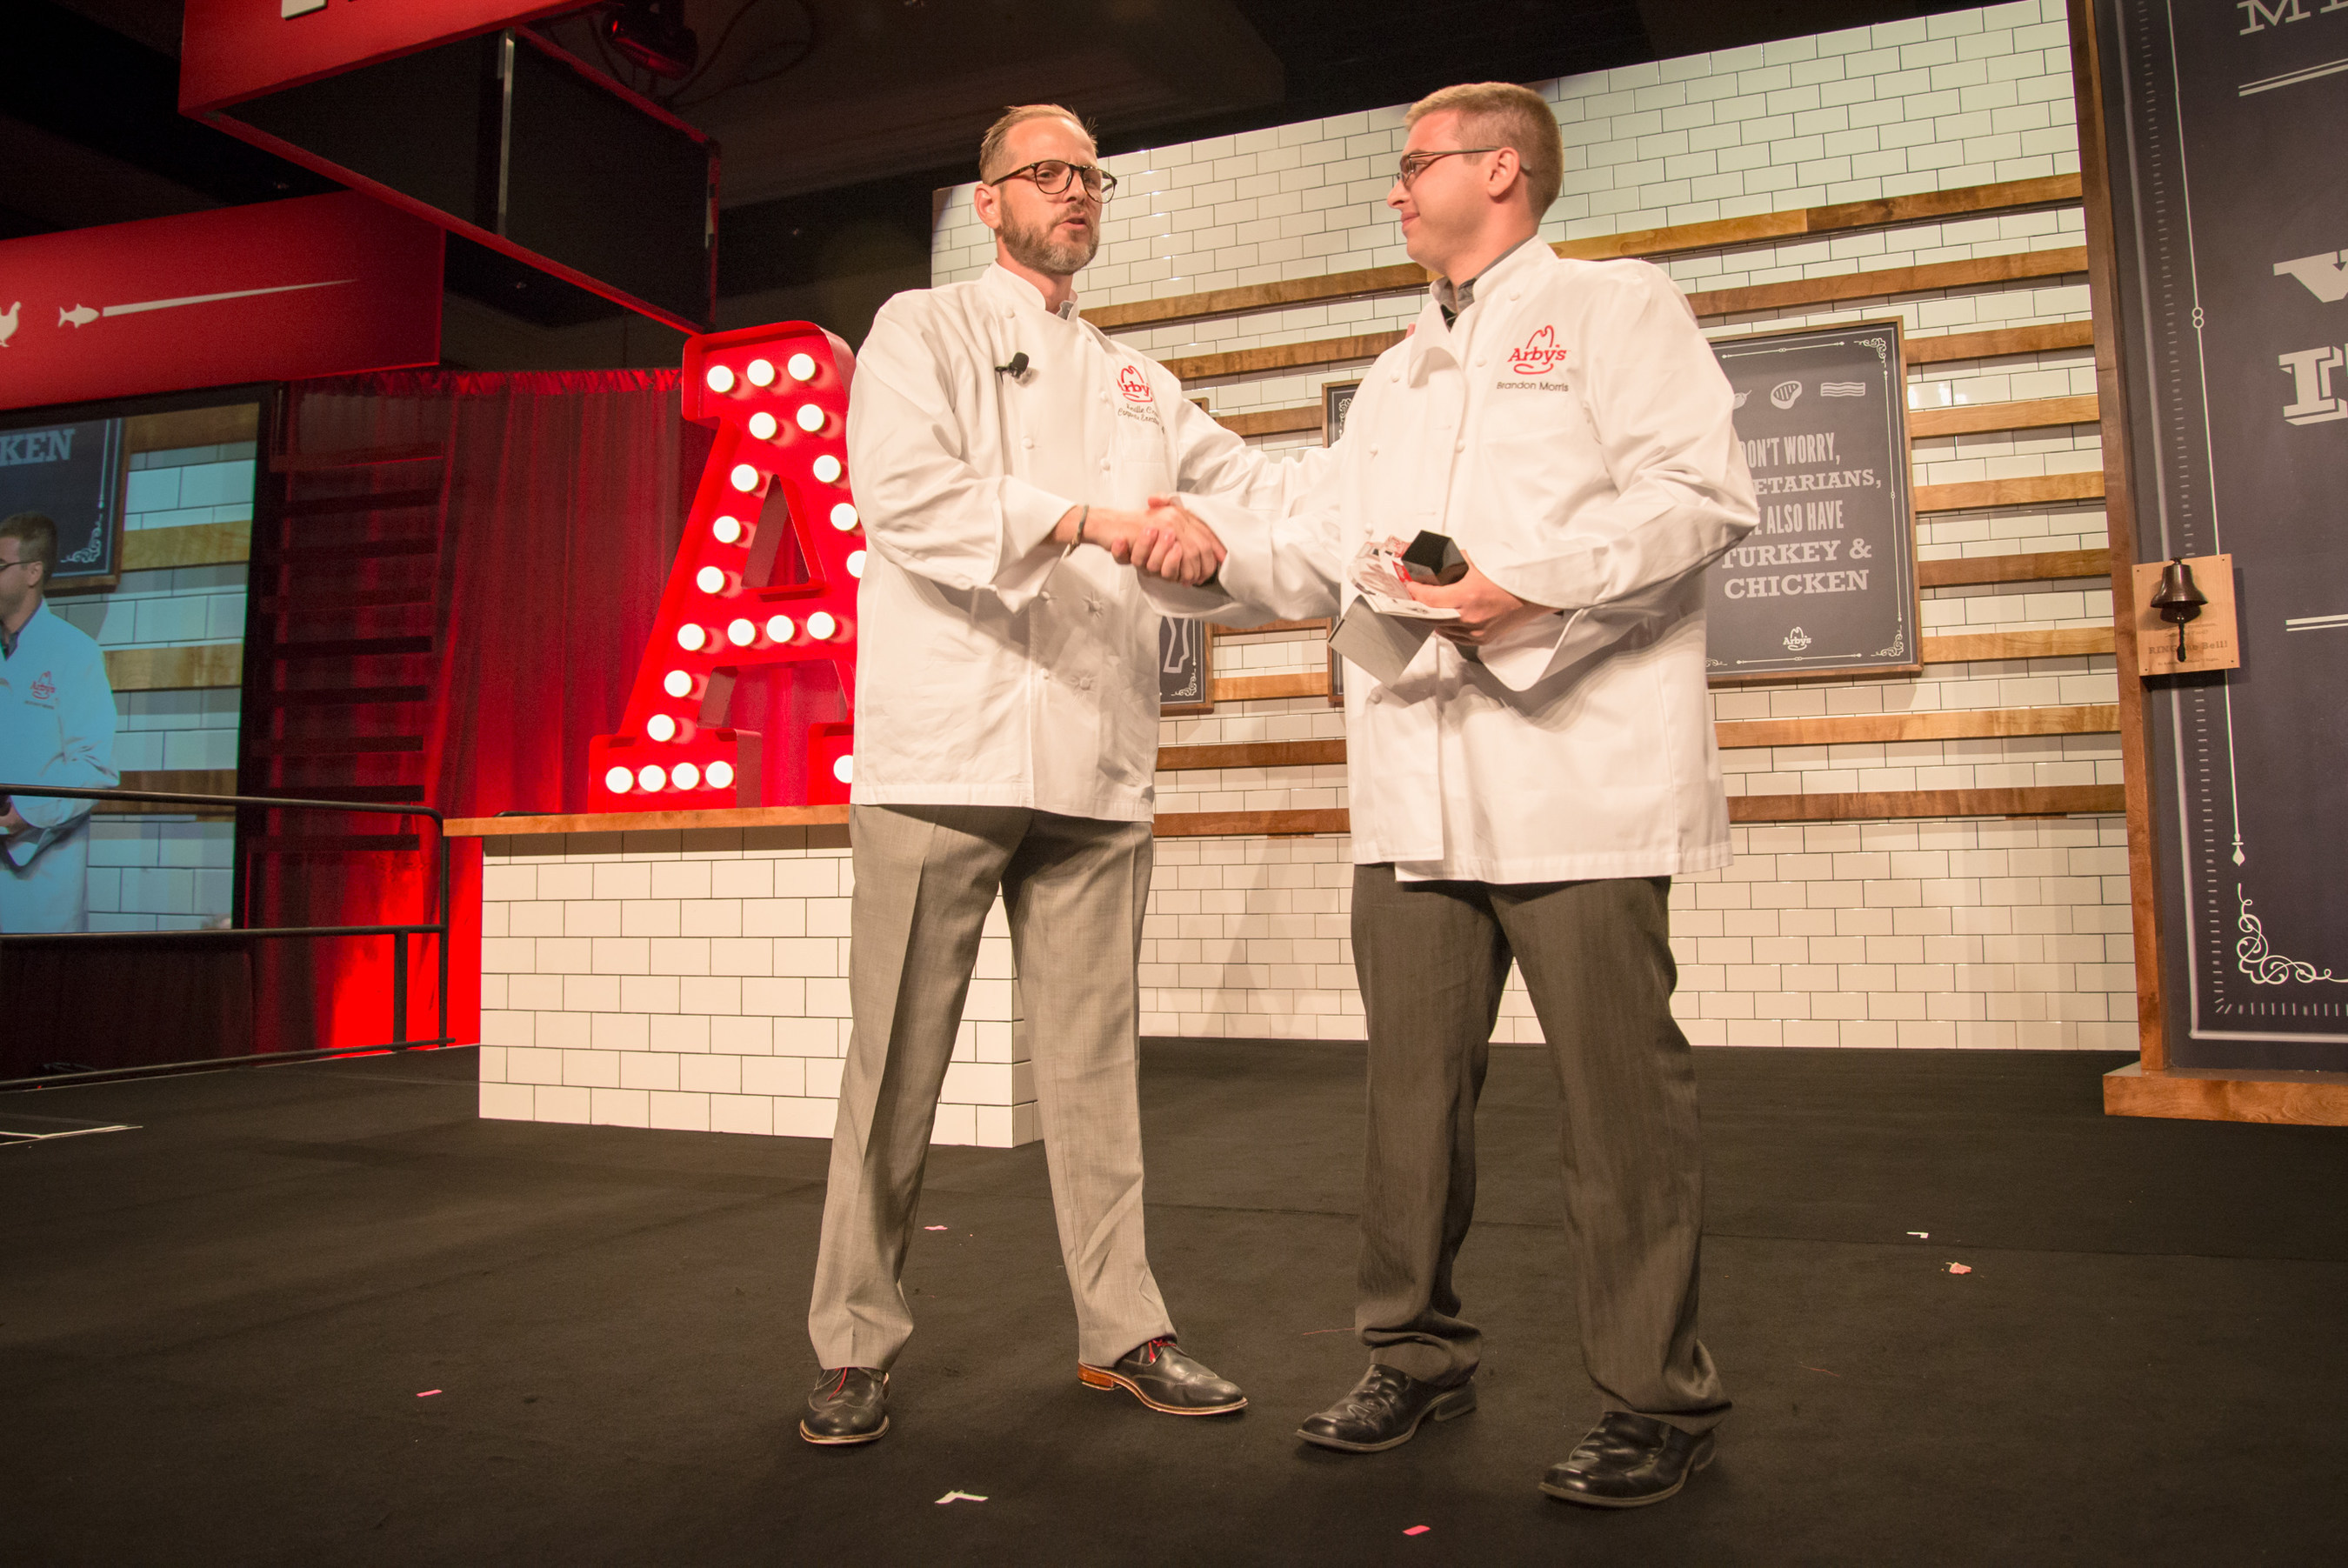 Arby's Corporate Executive Chef, Neville Craw (left), presents the Hey Chef Neville! award to team member, ...